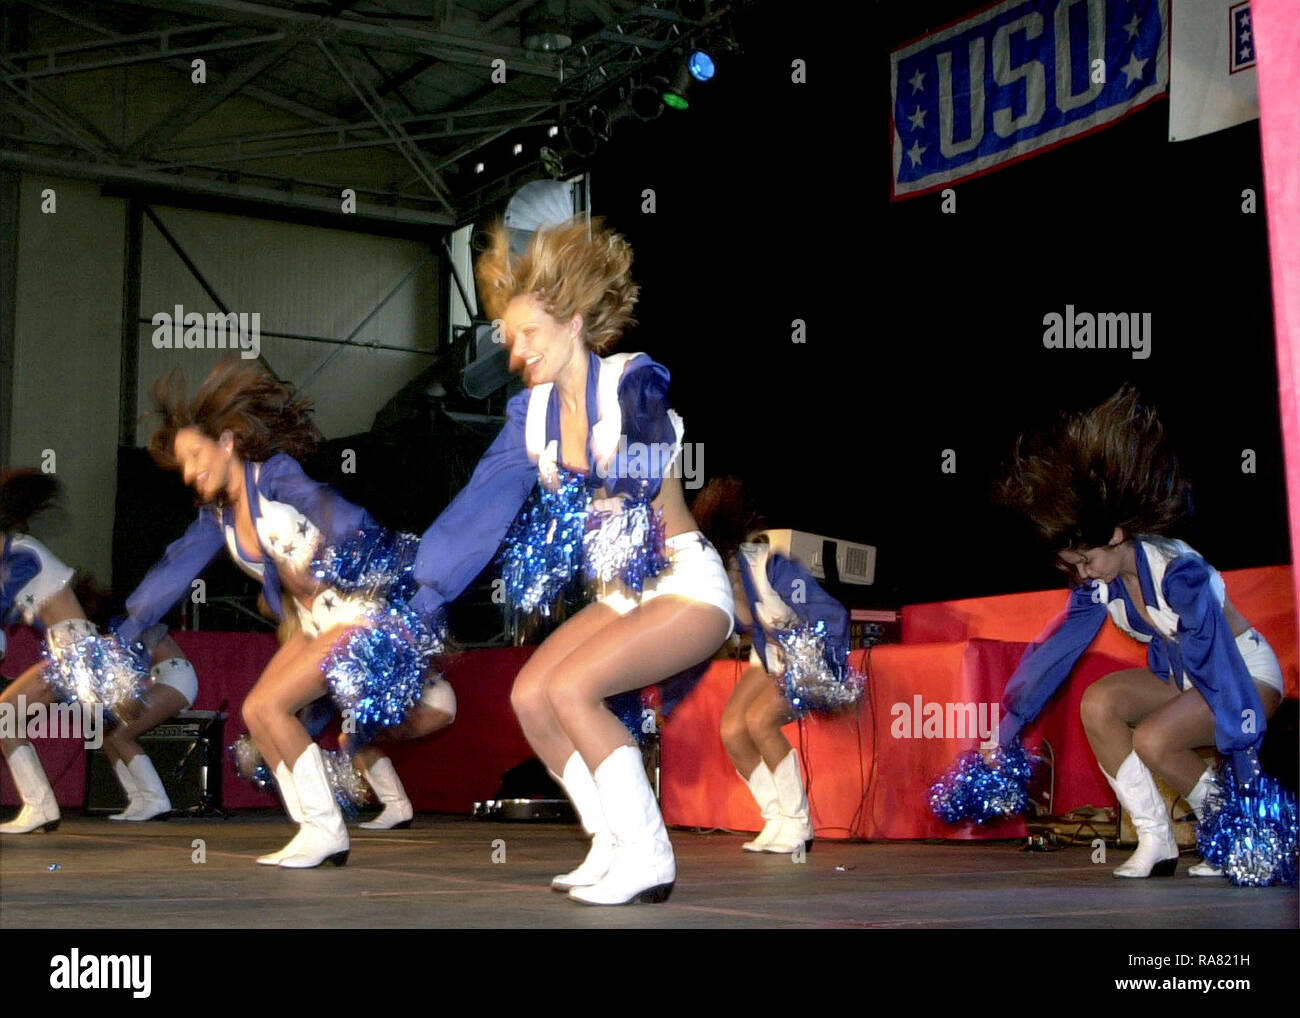 dd52828cf The Dallas Cowboys Cheerleaders perform during the Secretary of Defense  Holiday Tour 2000